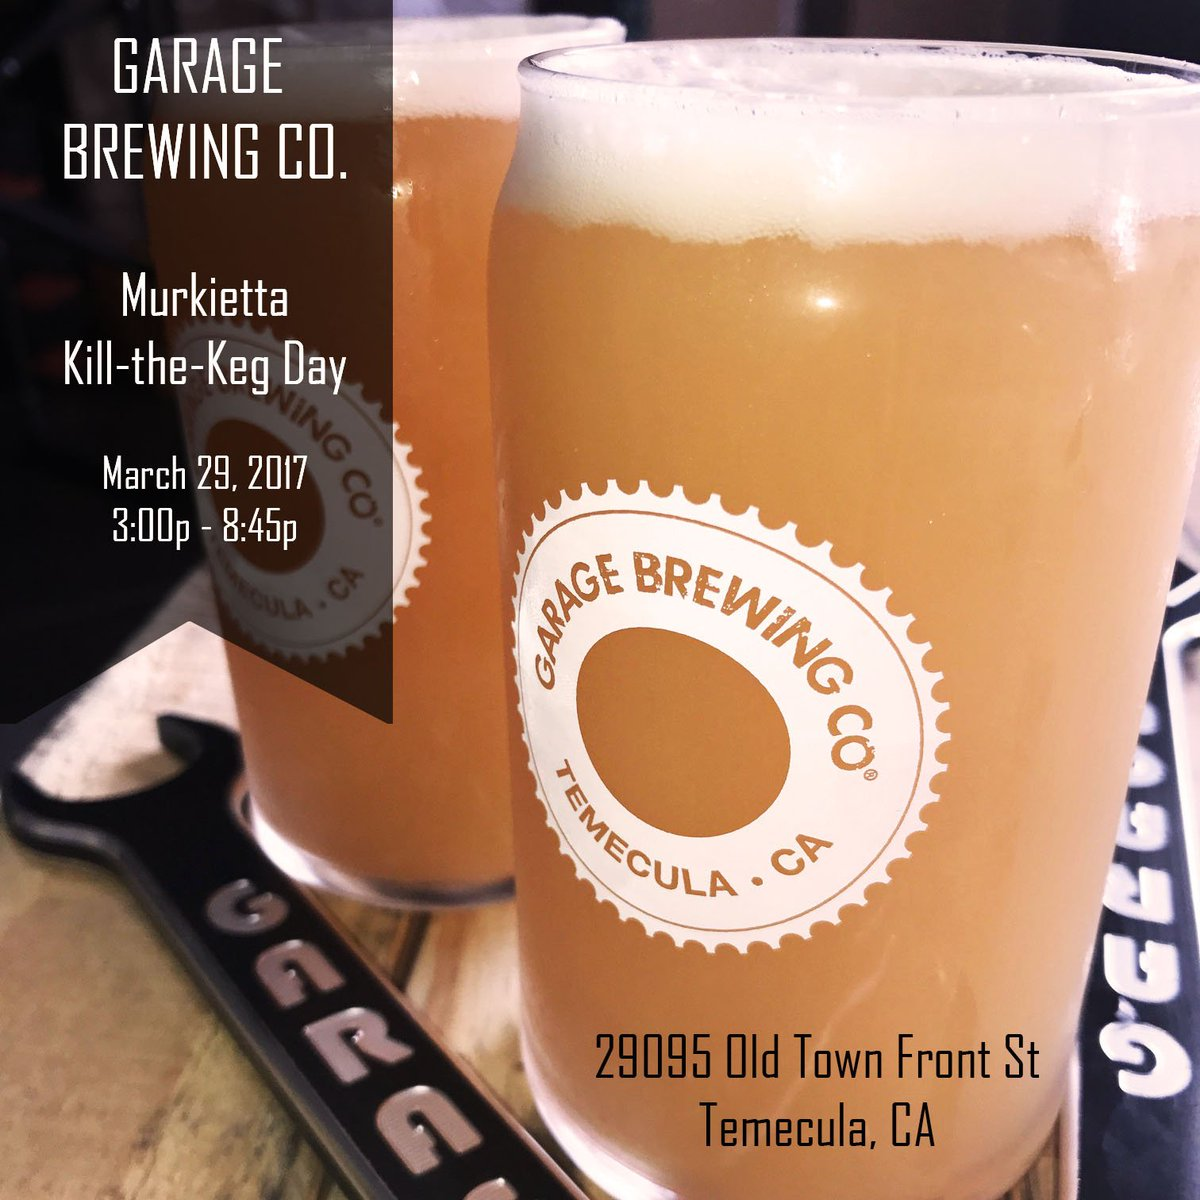 "garage brewing co on twitter: ""join us march 29th from 3p-8:45p"